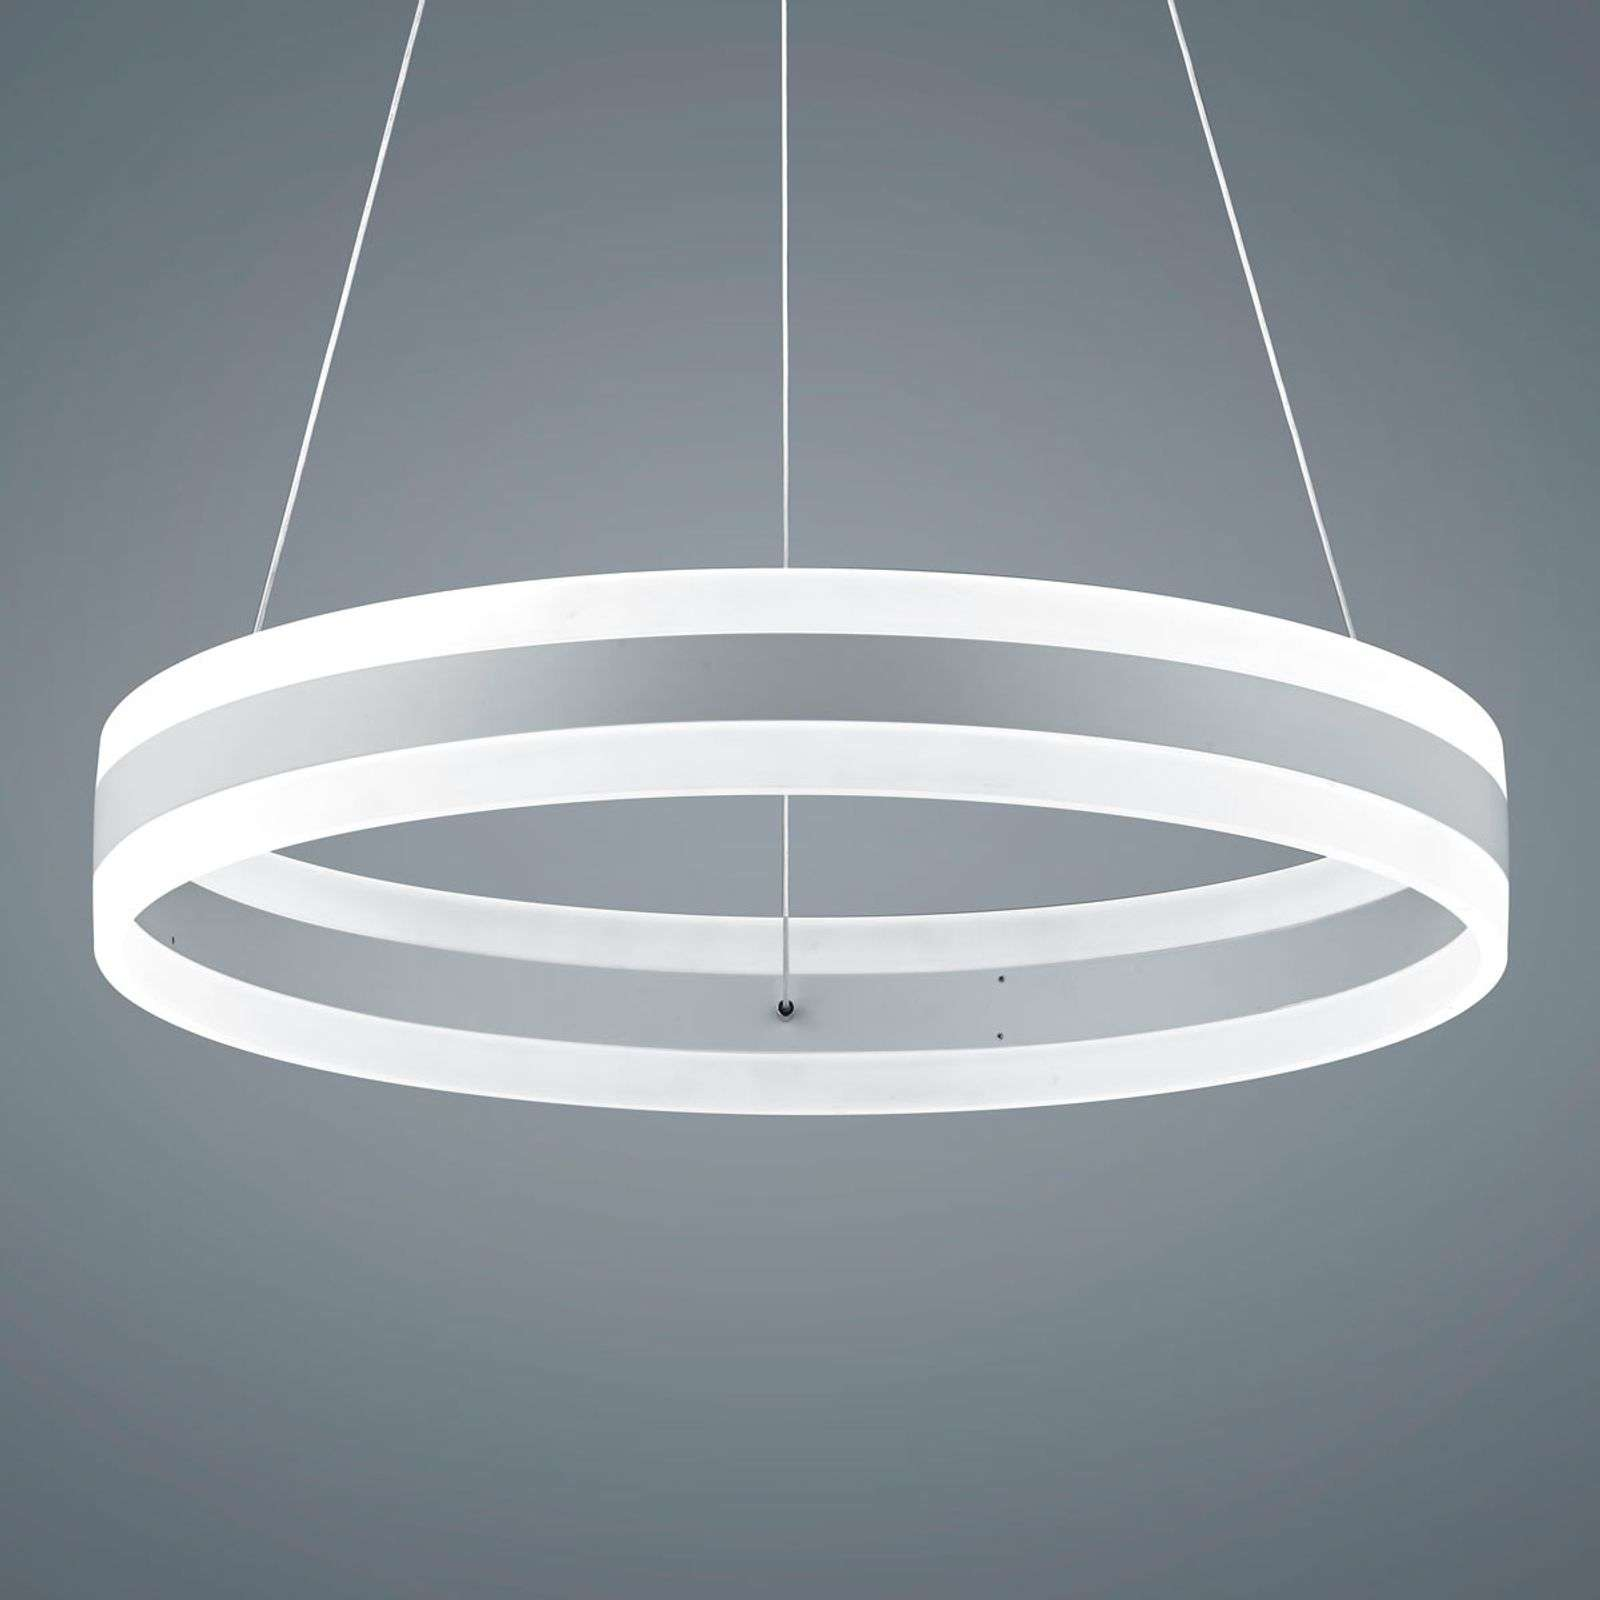 Suspension LED Liv blanc mat, diamètre 60 cm